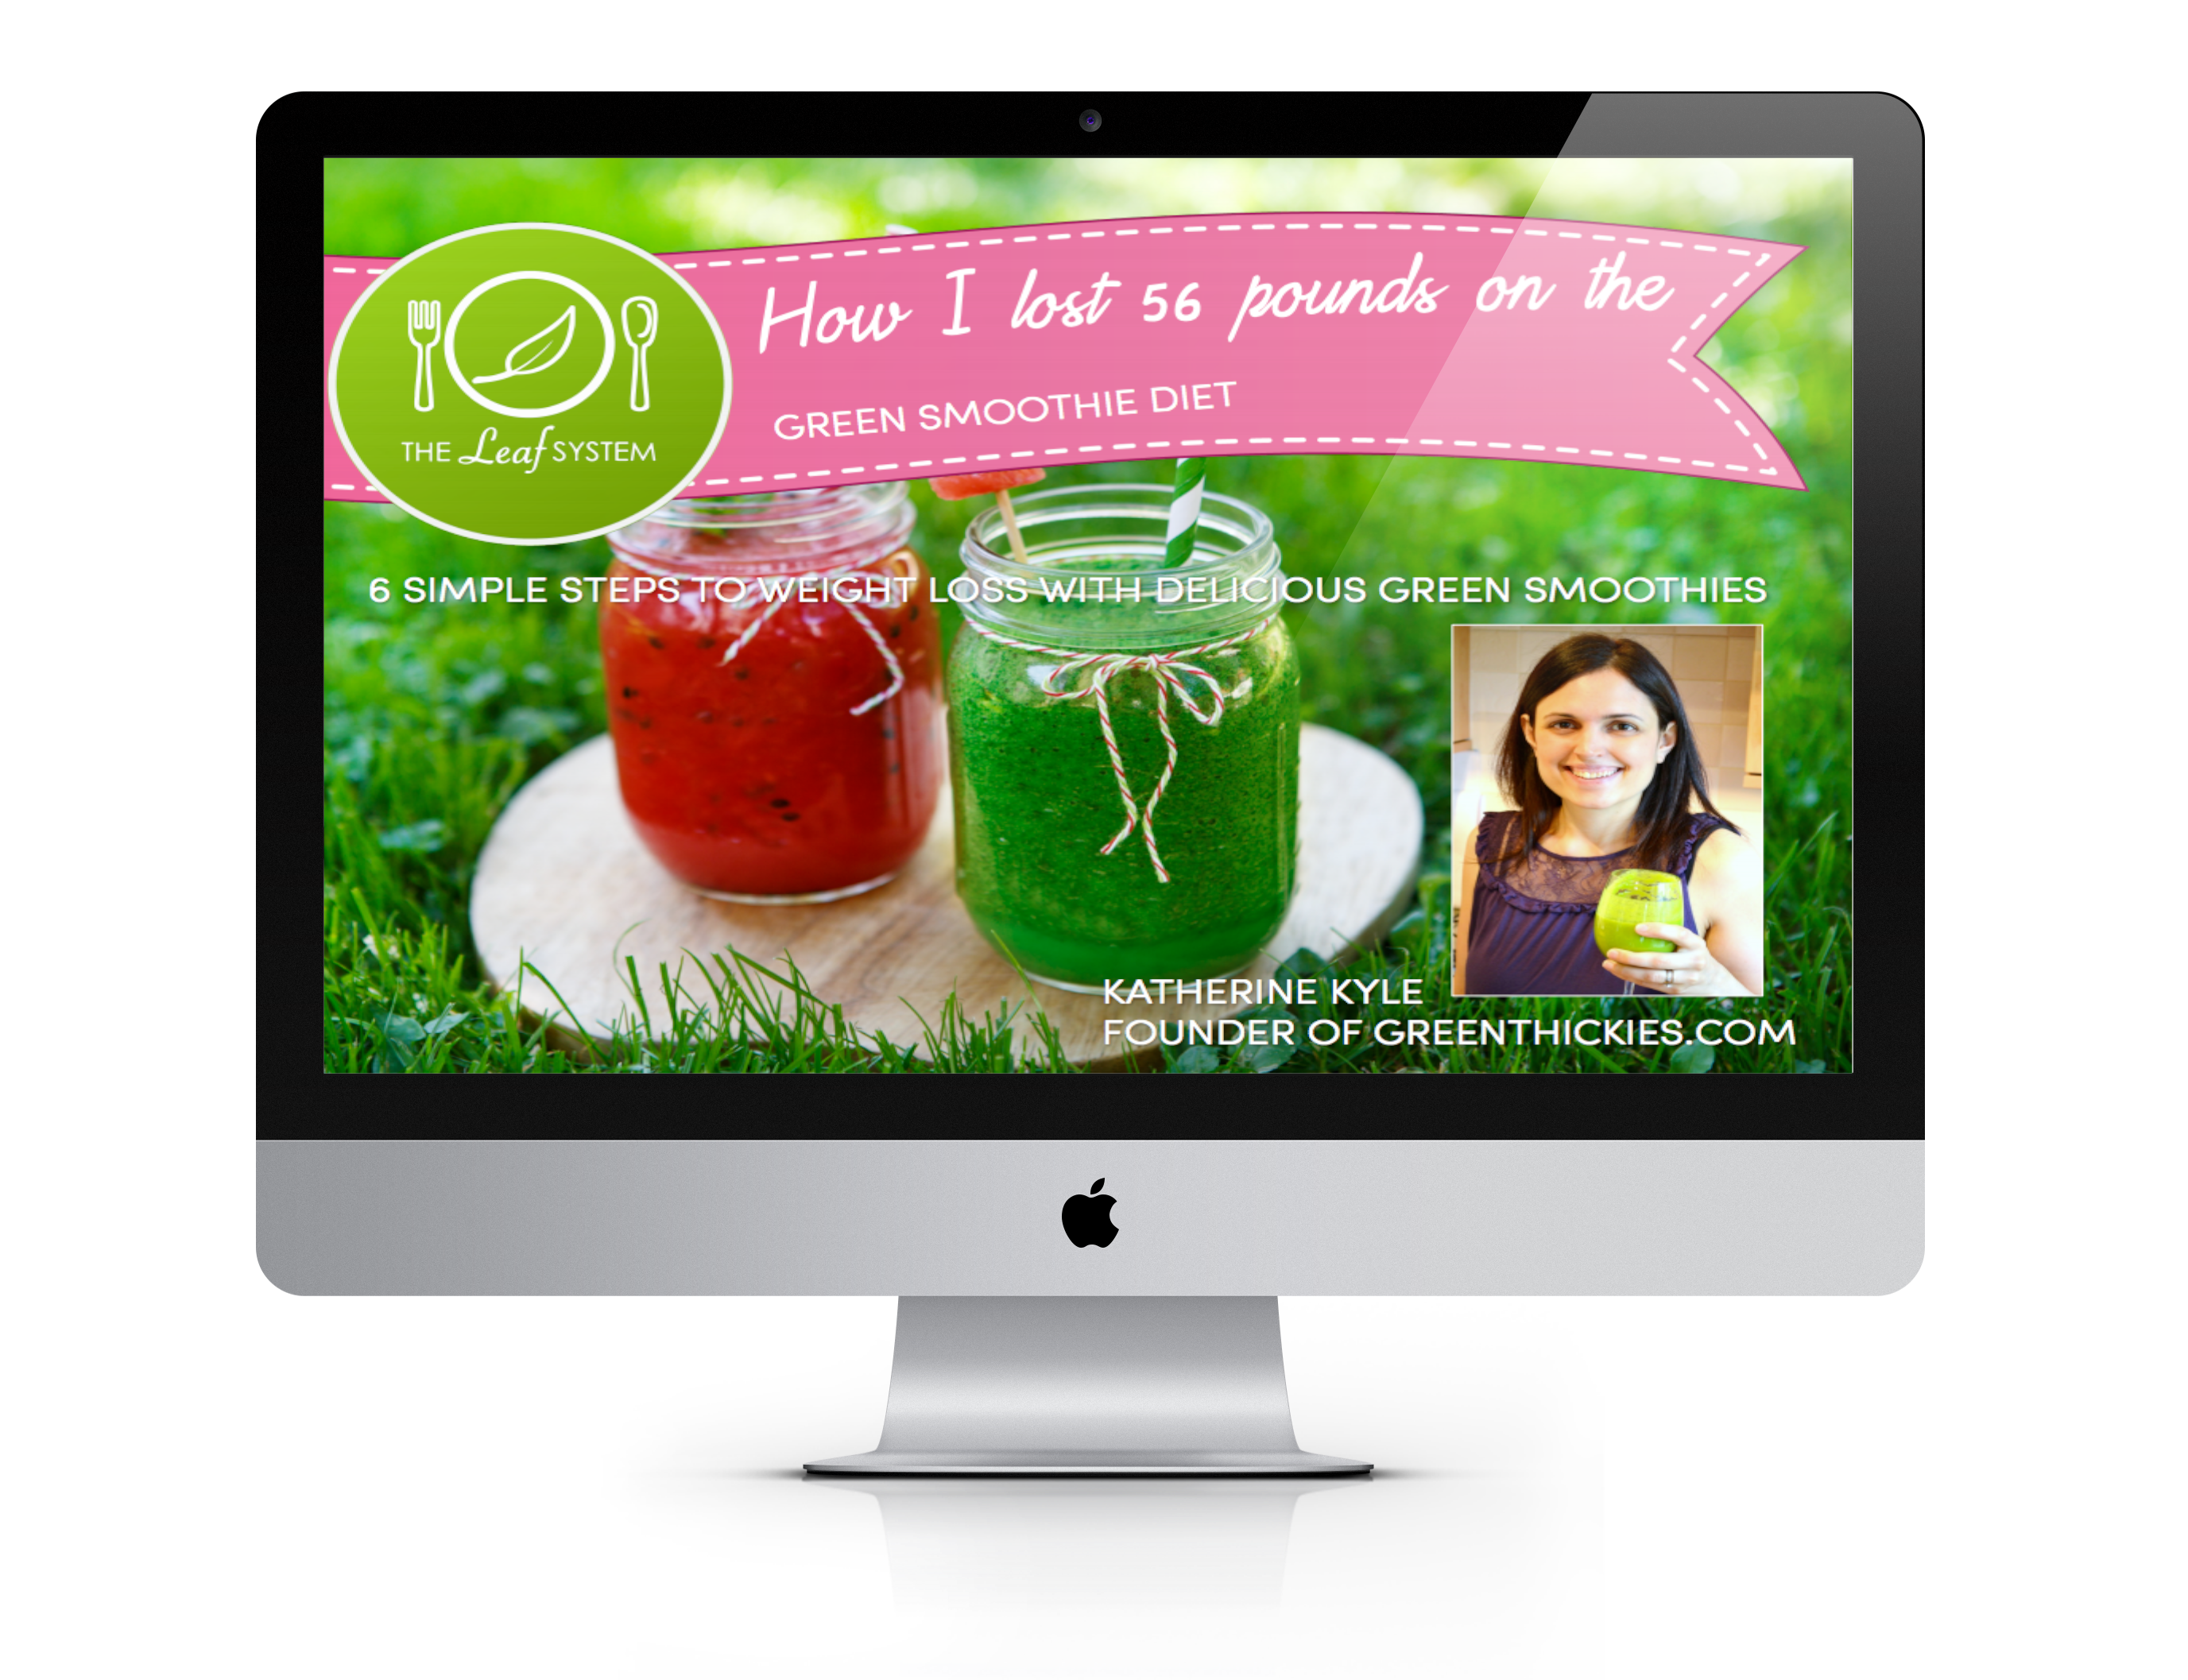 The Leaf System: The Complete Weight Loss System, 12 Months Of Meal Plans + 12 FREE Bonuses